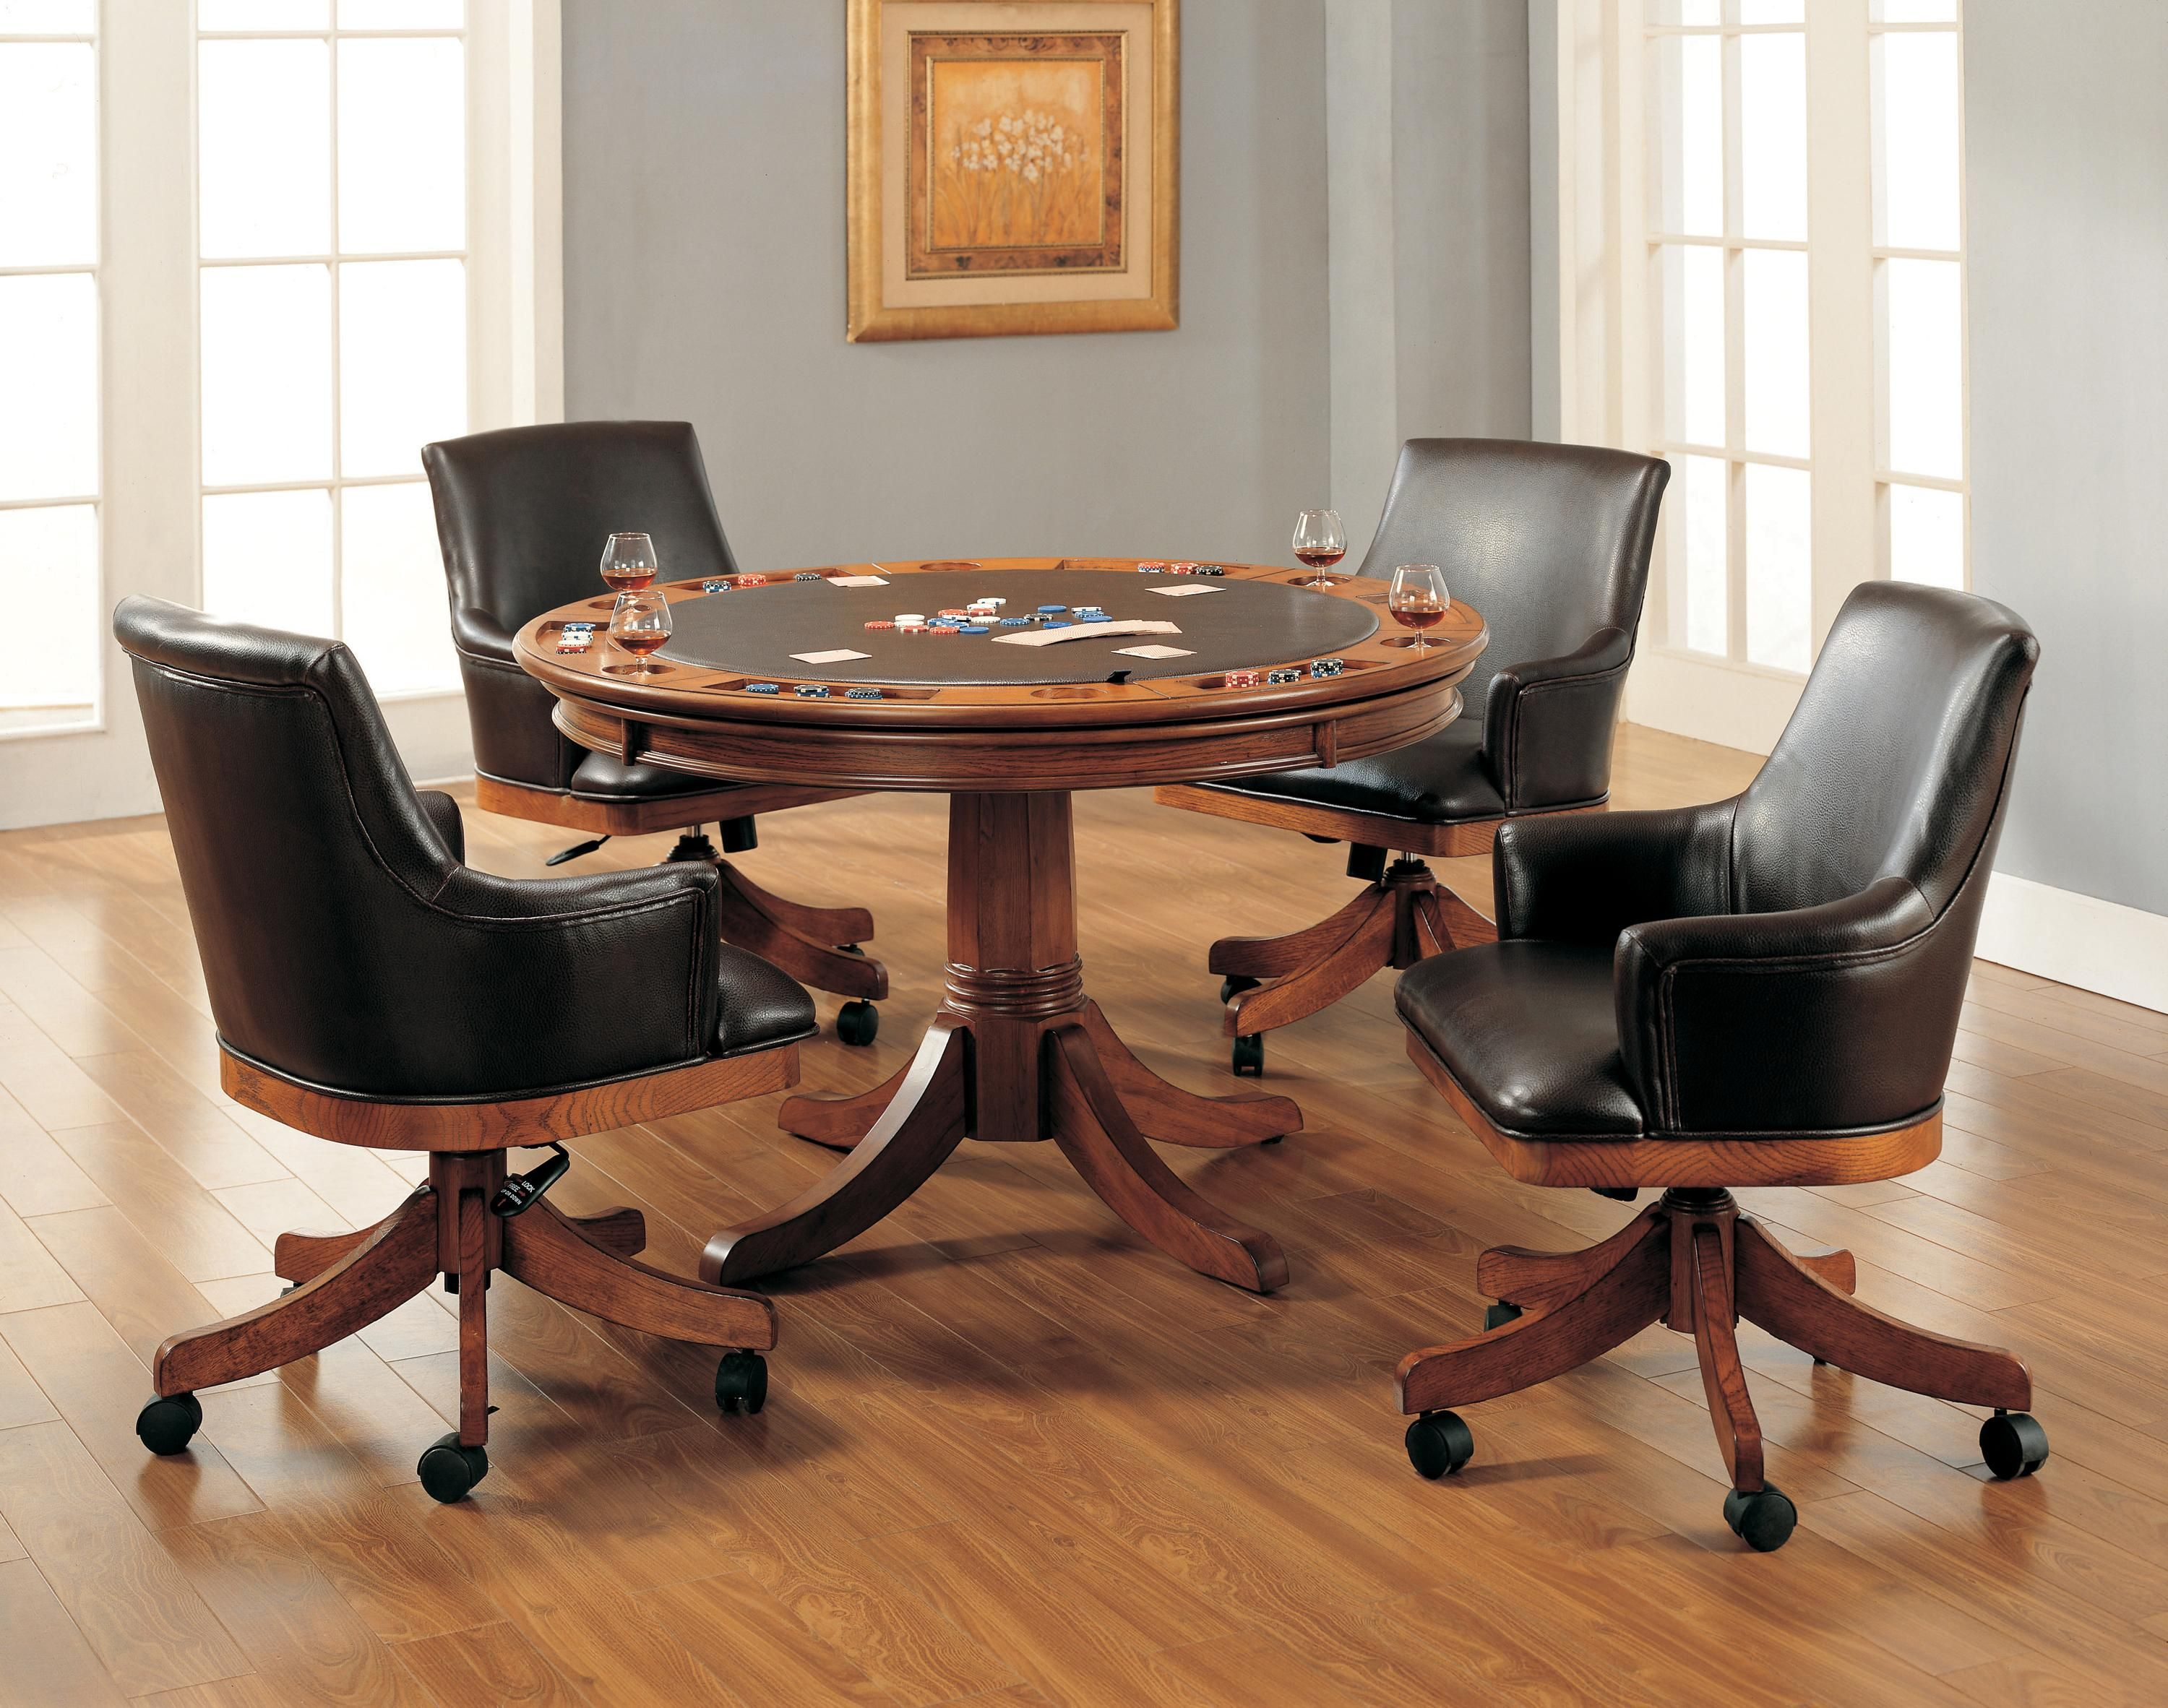 Game Table And Chairs Set Wooden Kitchen Table Sets